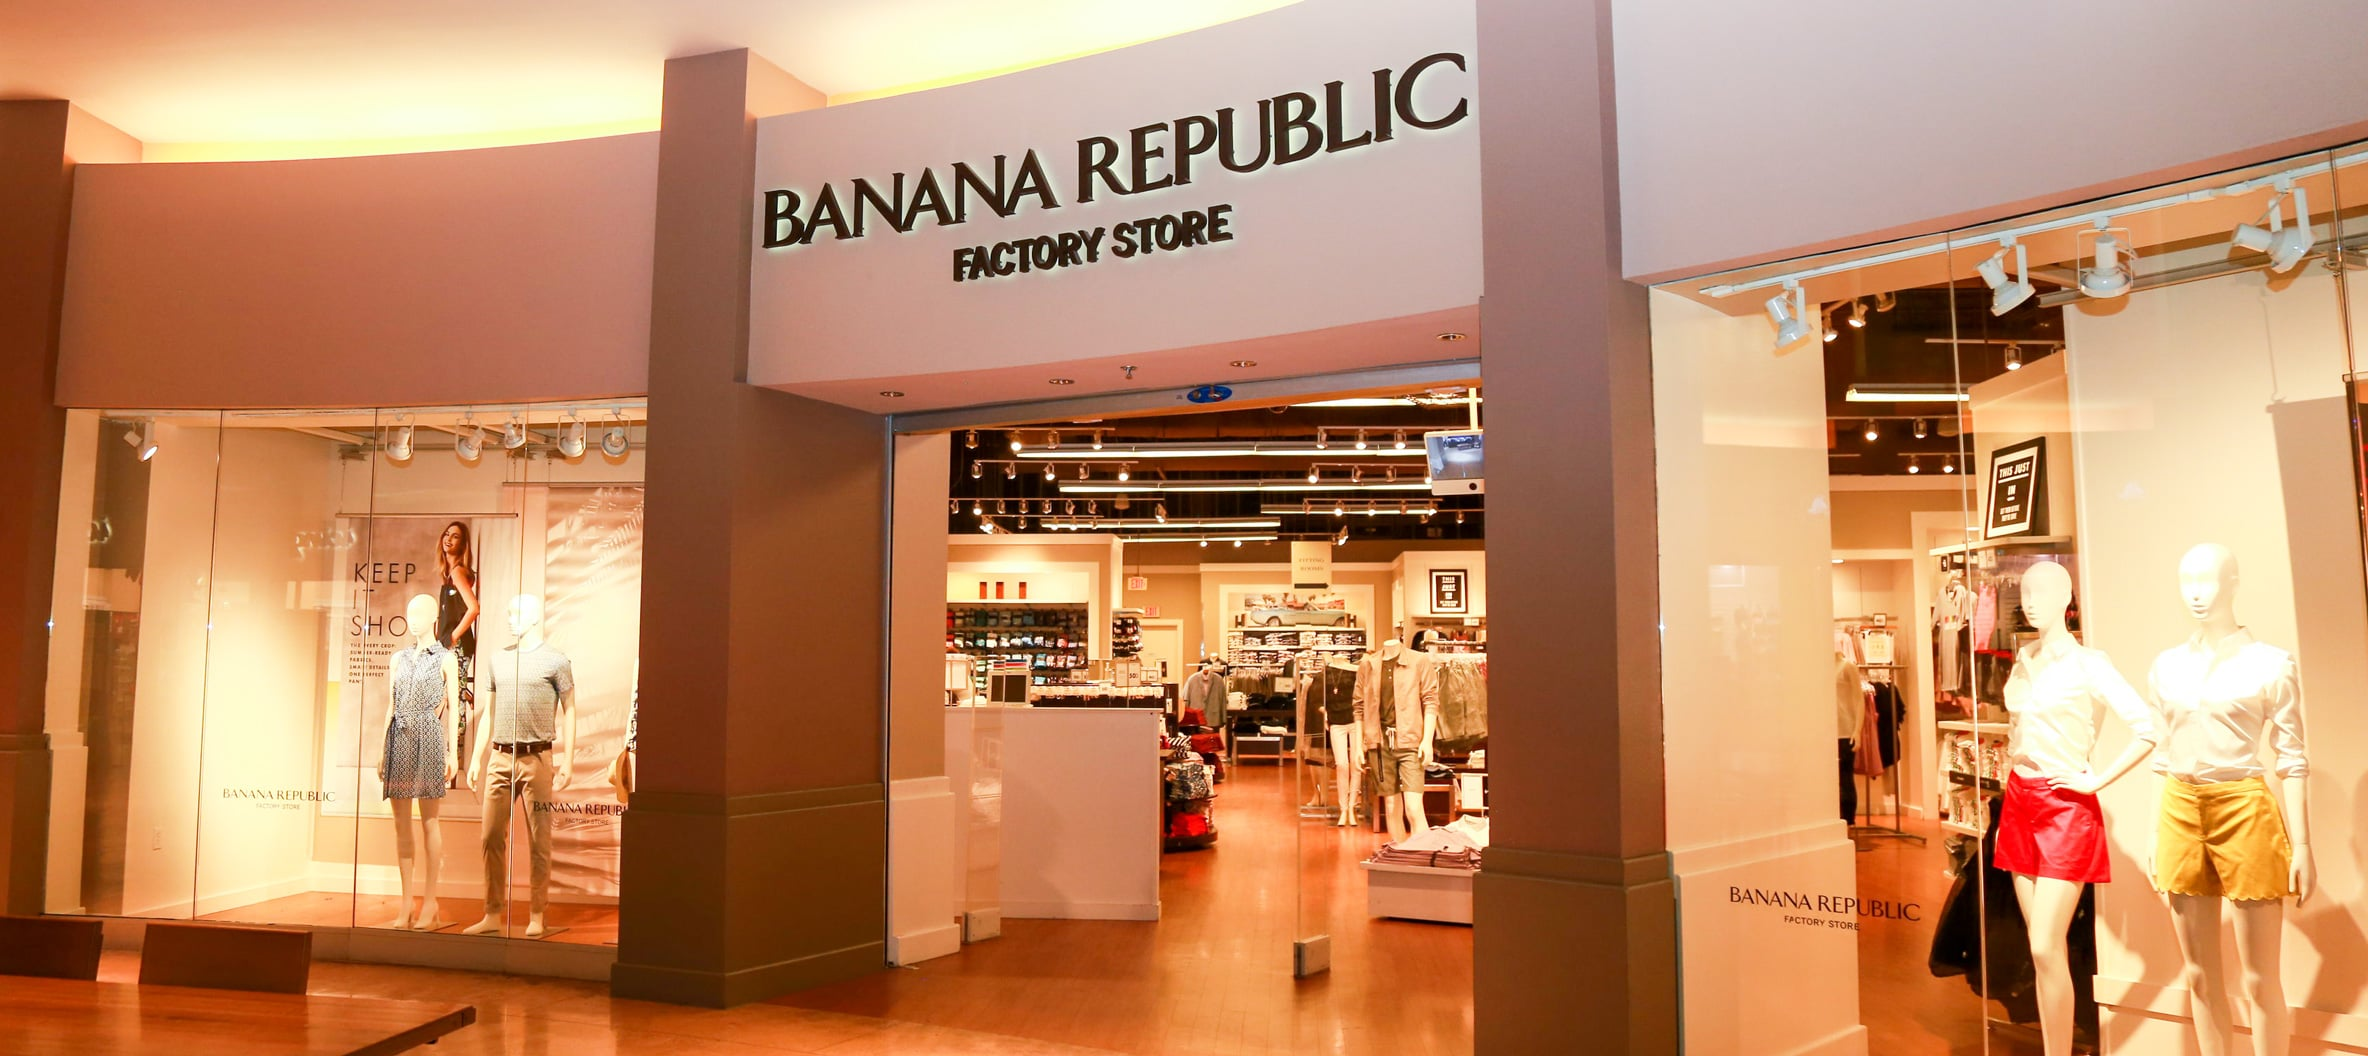 Feedback 4 BR Banana Republic